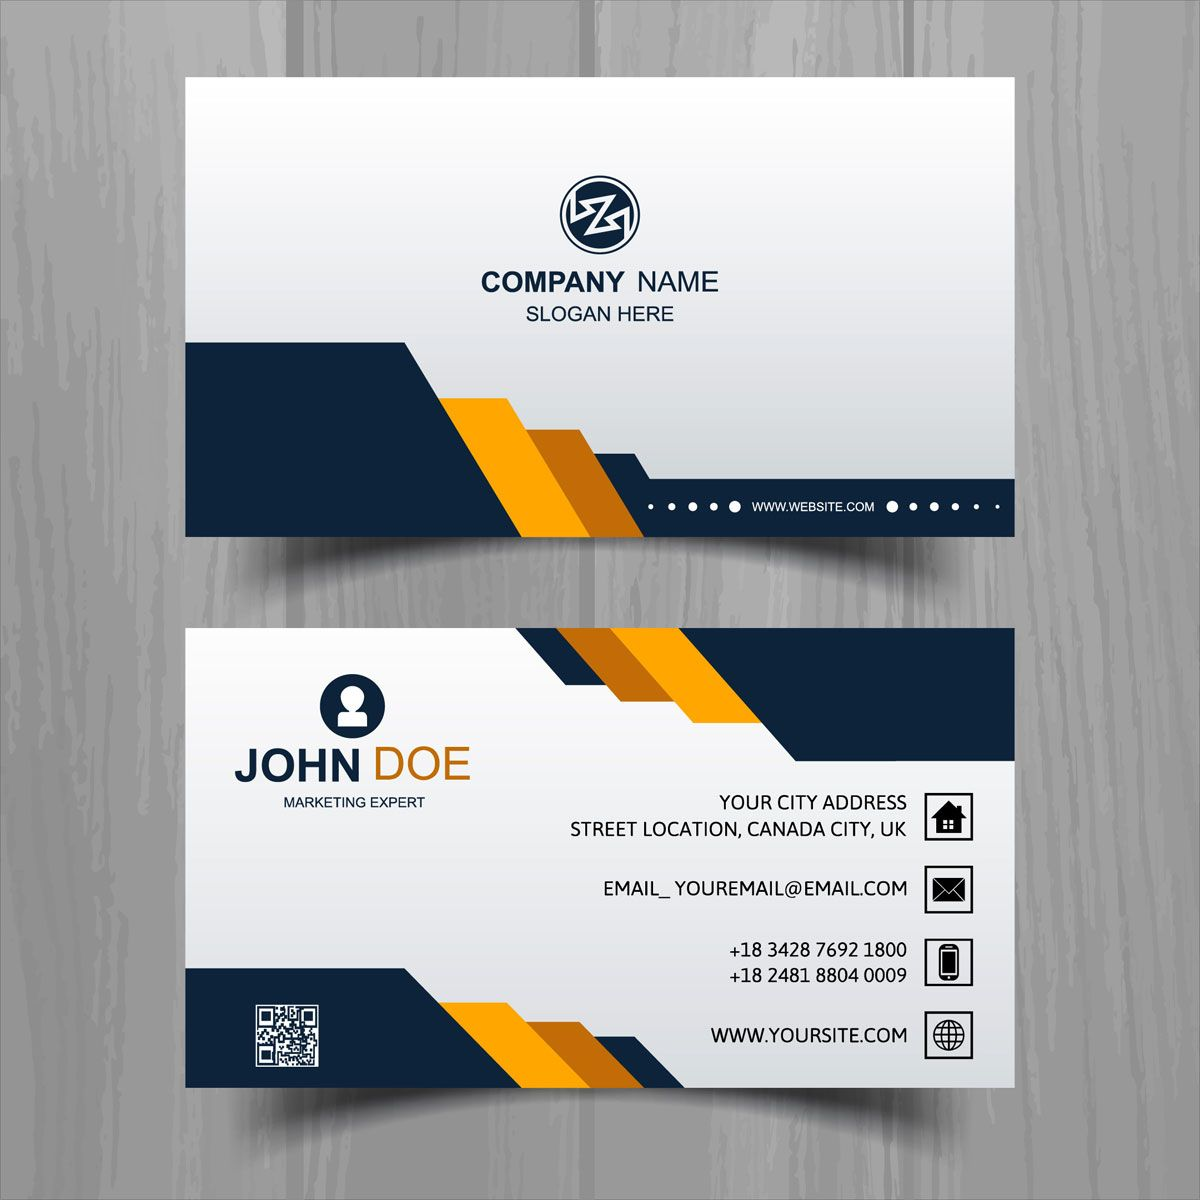 Abstract Stylish Wave Business Card Template Design Business Card Template Design Elegant Business Cards Business Card Template